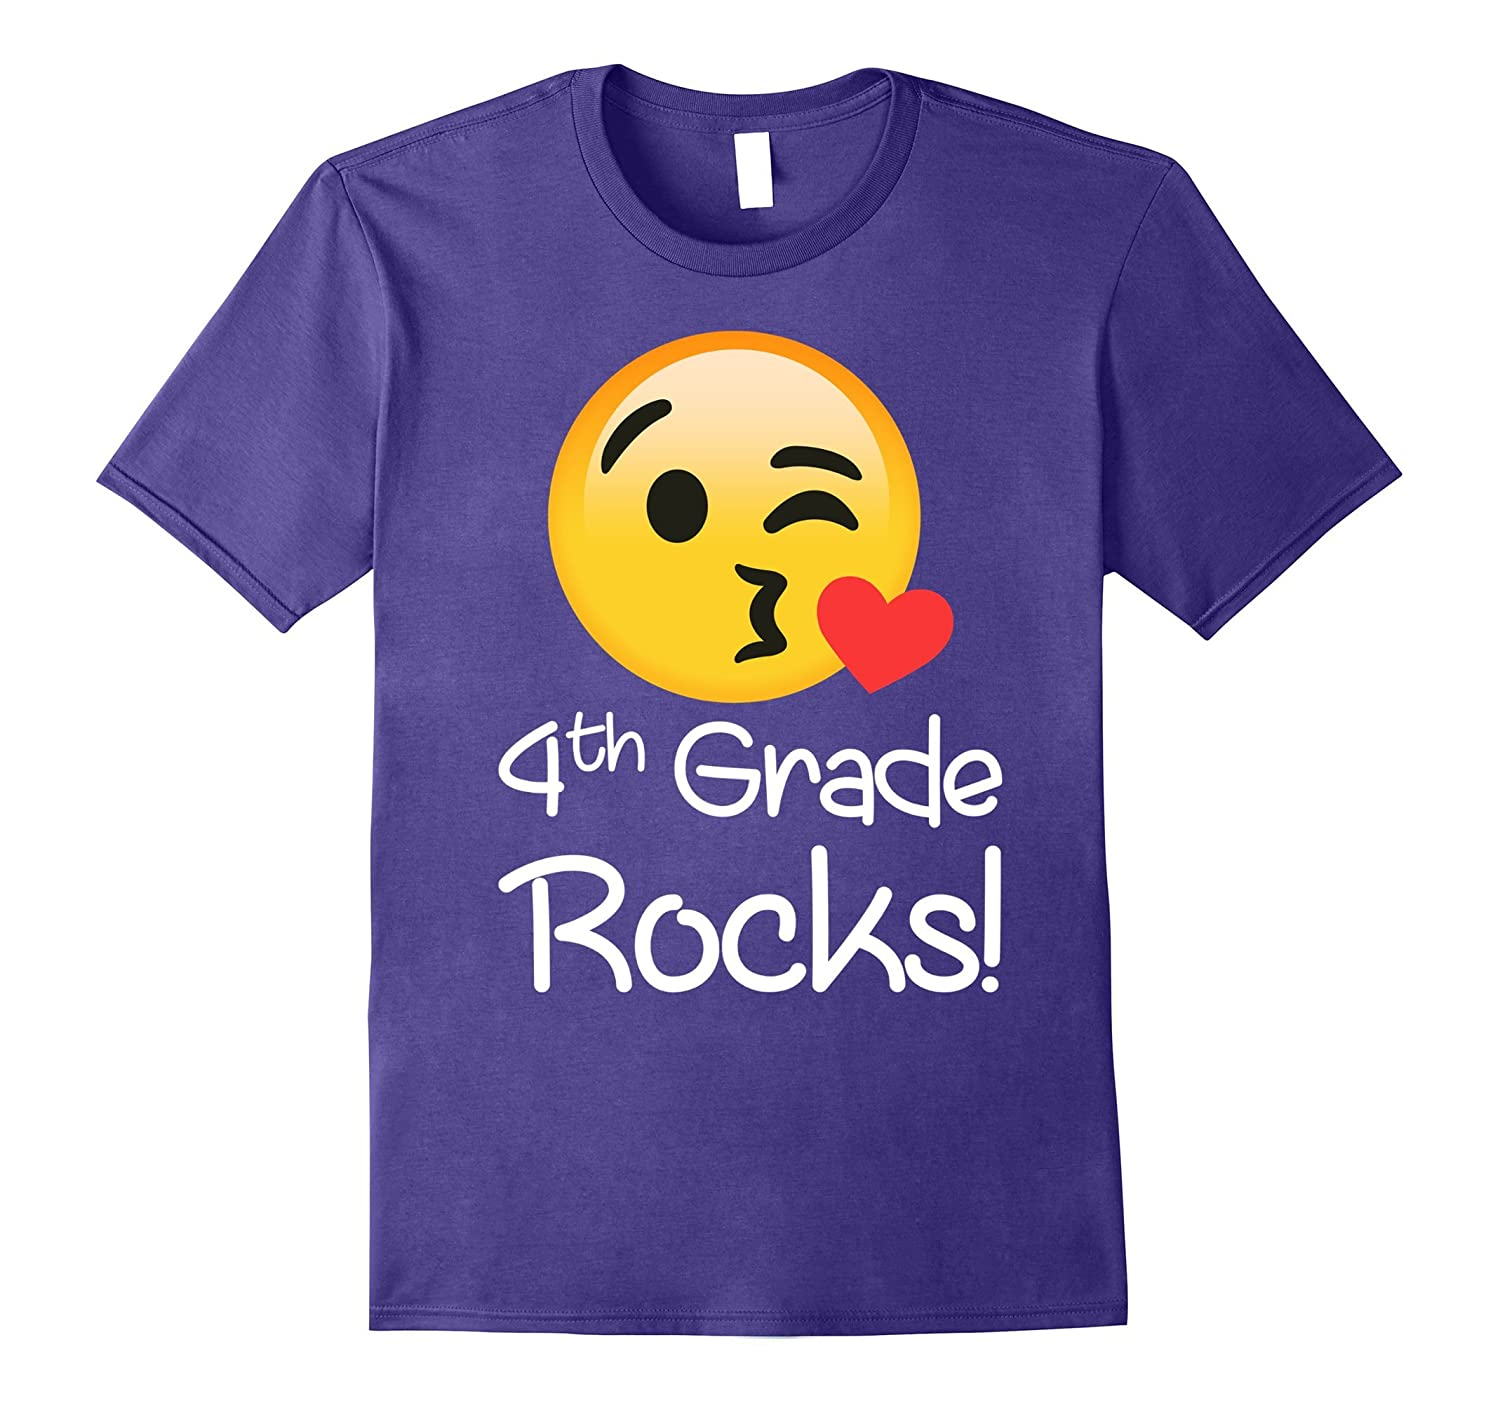 4 th Grade Rocks Emoji Shirt Funny fourth Graders & Teachers-Rose